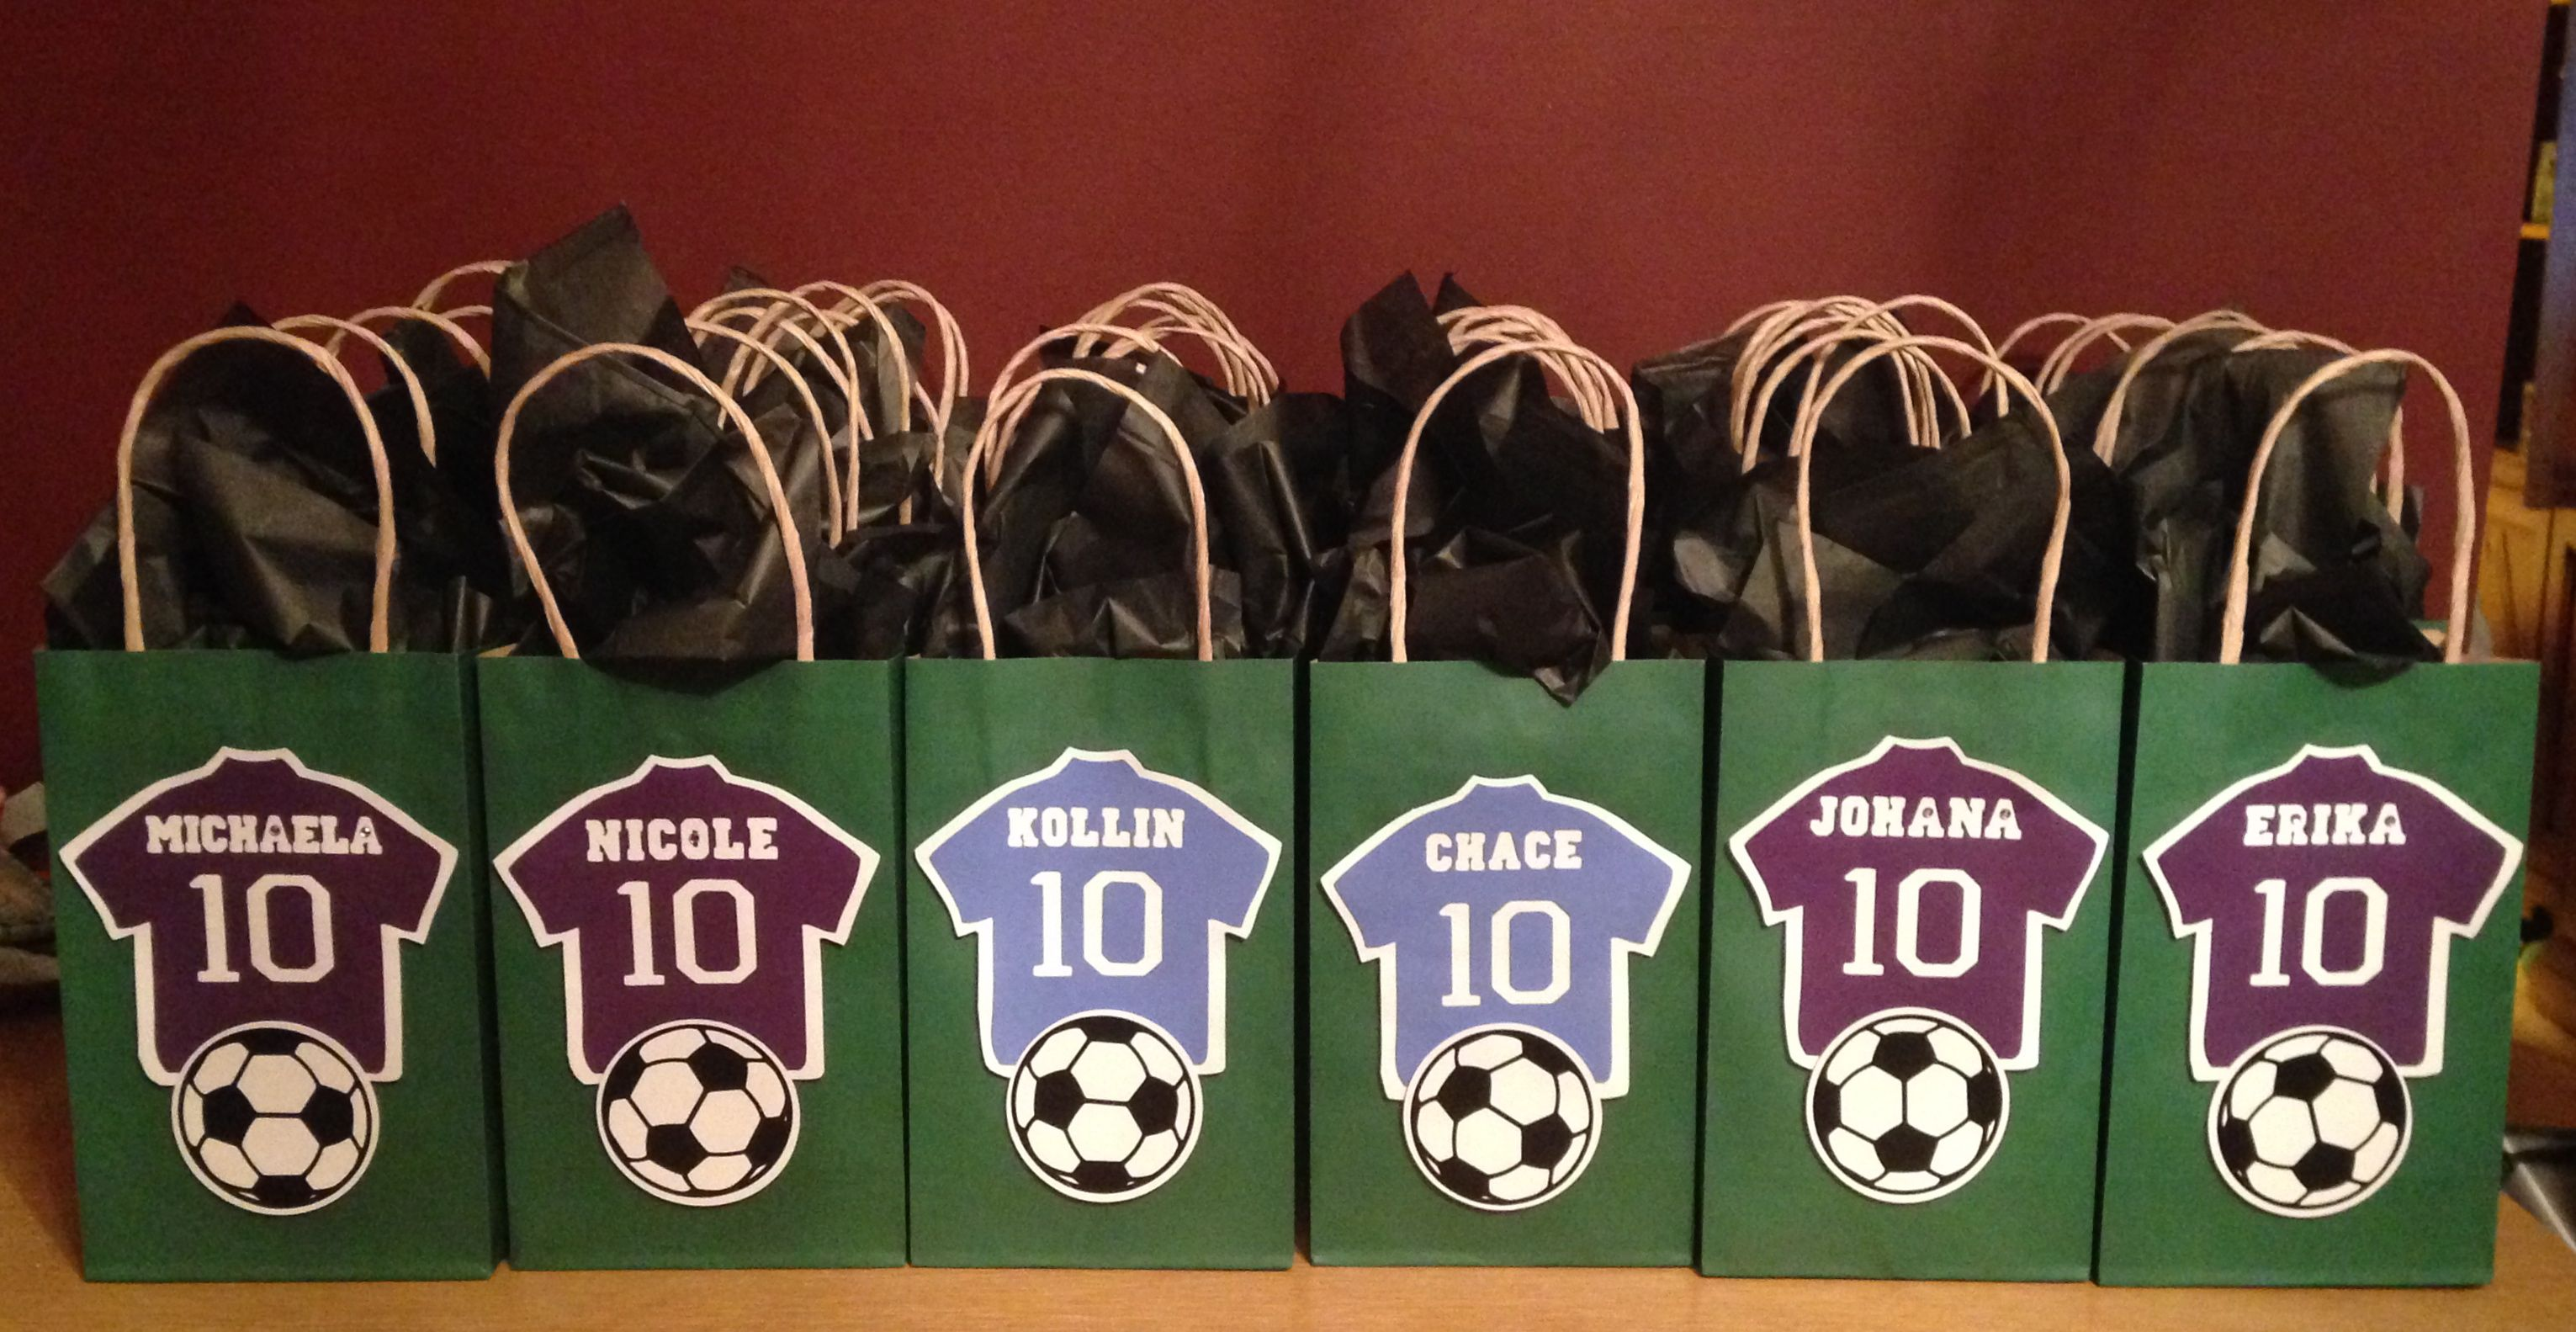 333e9e9b9bb Soccer Goody Bags I made for Lucas' 4th Grade Classmates. Purple Jerseys  for the girls and Blue Jerseys for the boys, with their name and the #10 in  honor ...